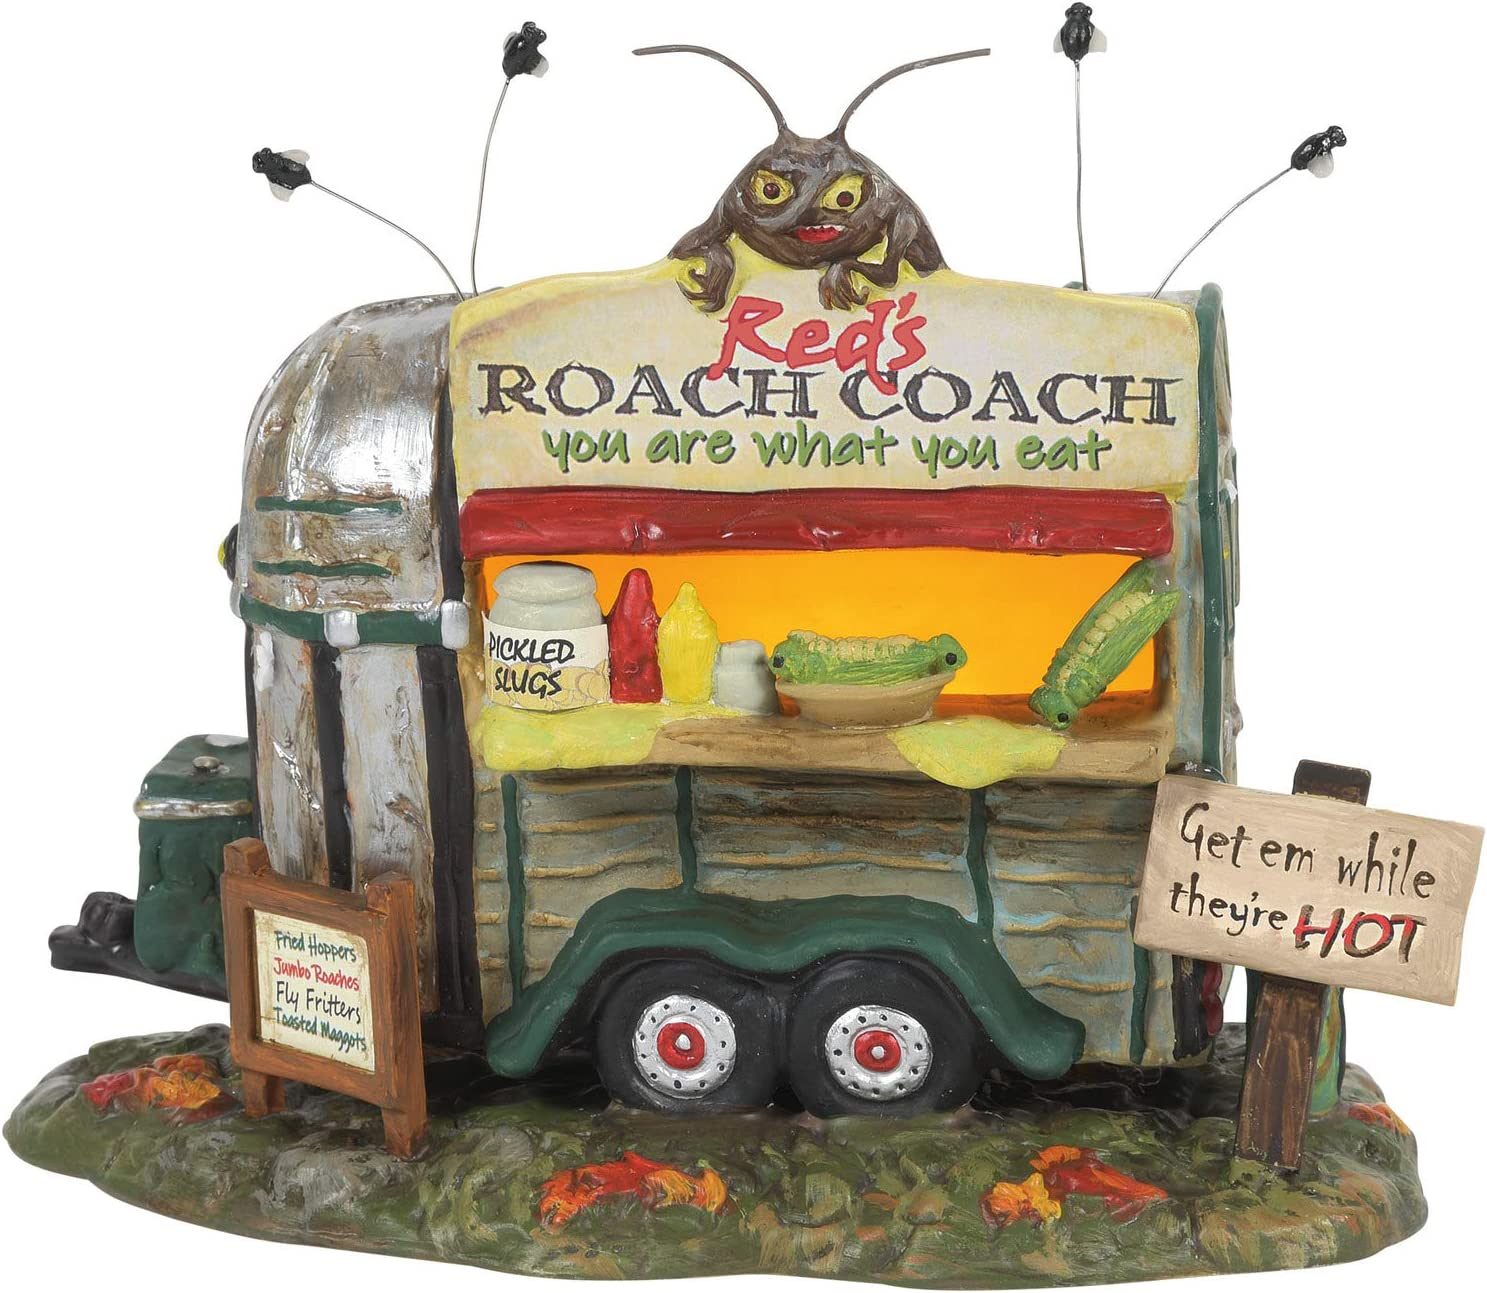 Department 56 Snow Village Halloween Haunted Wheels Food Truck Red's Roach Coach Lit Building, 5.5 Inch, Multicolor